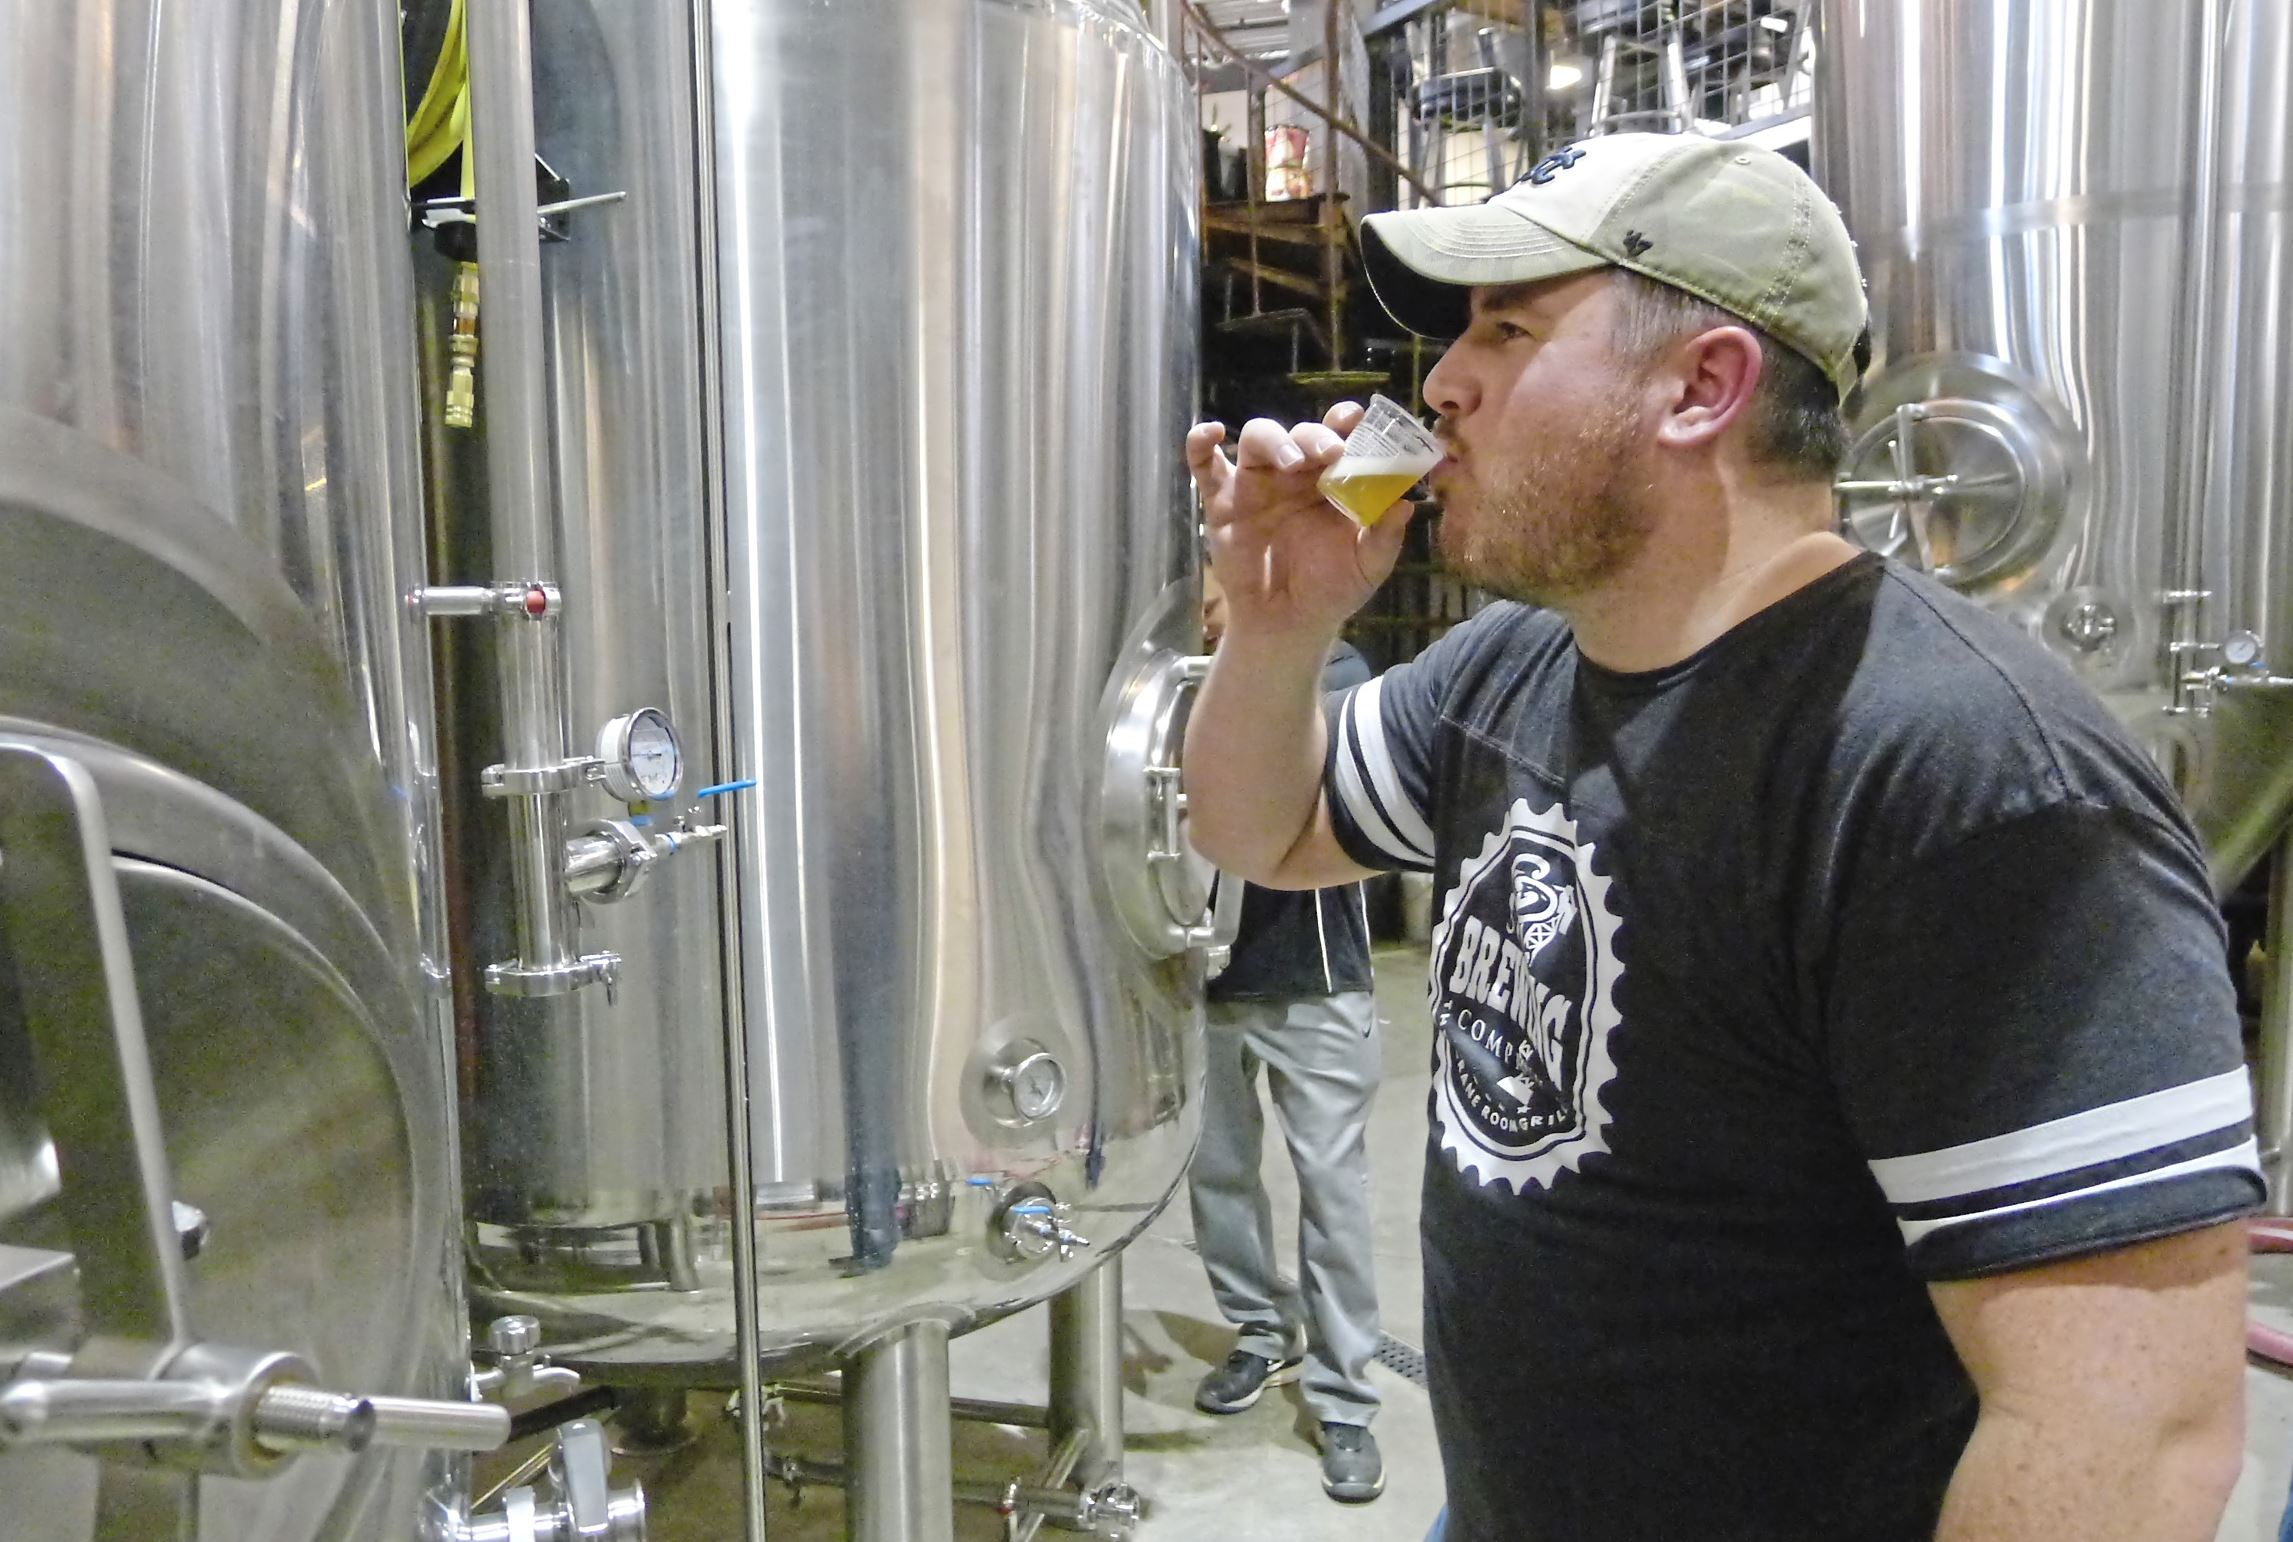 CR BREWING 2-1 Brewer Bryan McDowell takes his first taste of his kolsch after it was carbonated in one of the bright tanks in the brewhouse at the new CR Brewing Co. in Neshannock, Pa..